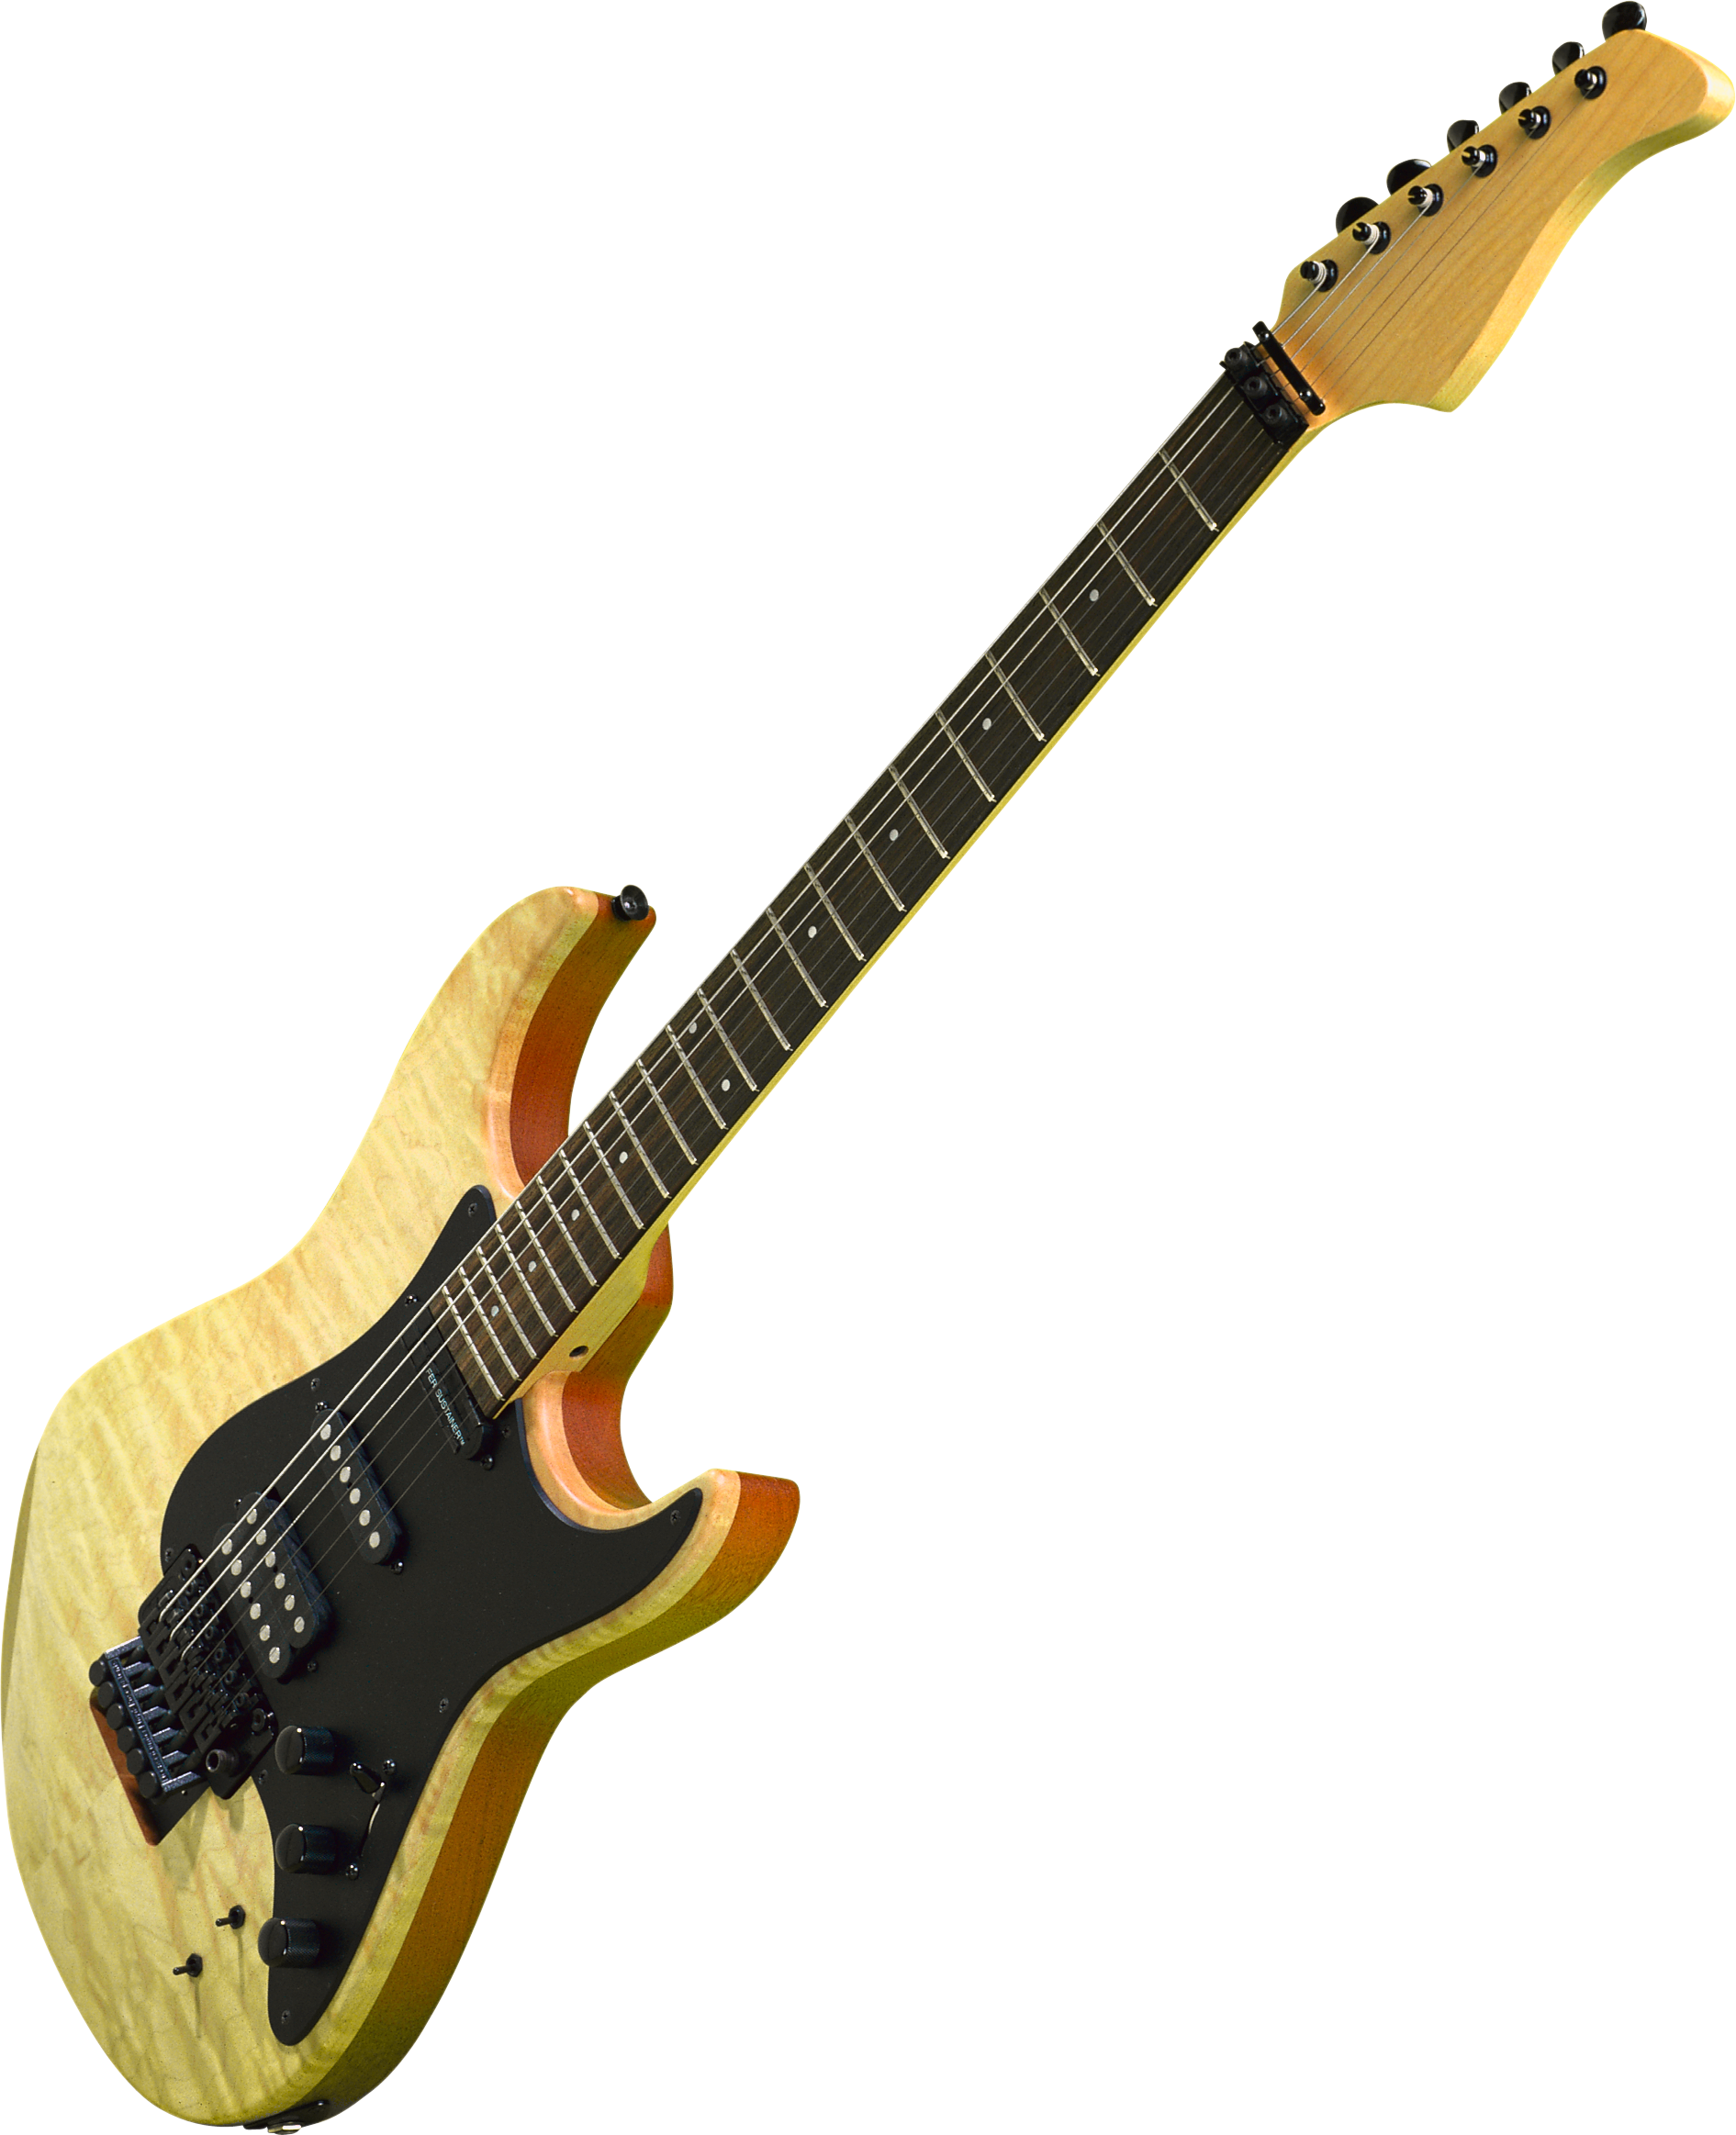 freeuse stock Guitar clipart rockabilly. Png images free picture